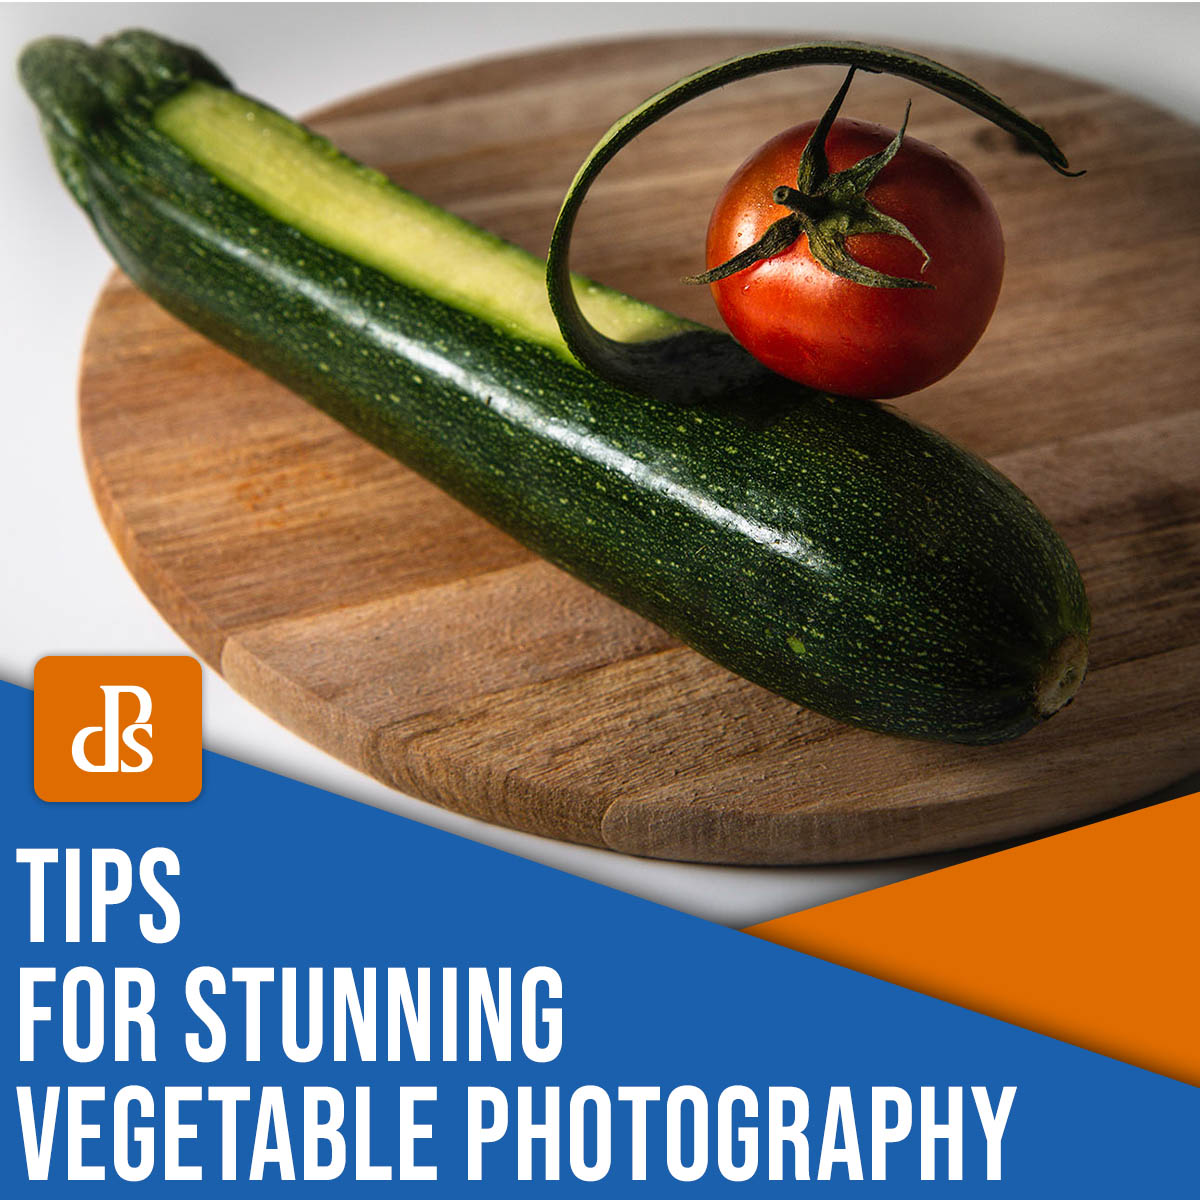 tips for stunning vegetable photography